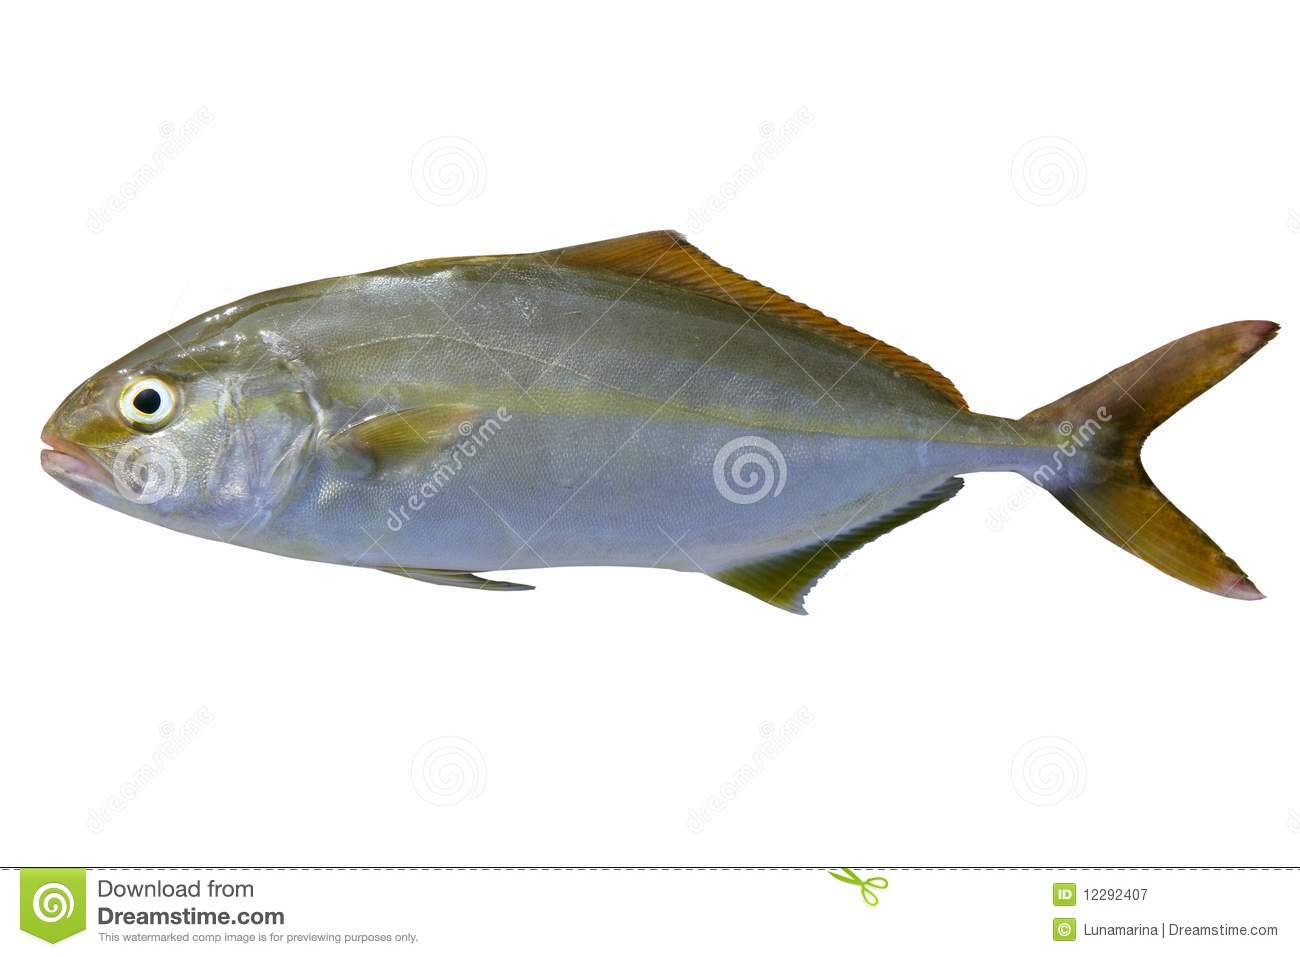 Seriola dumerili fish greater amberjack fish stock image for Image of fish